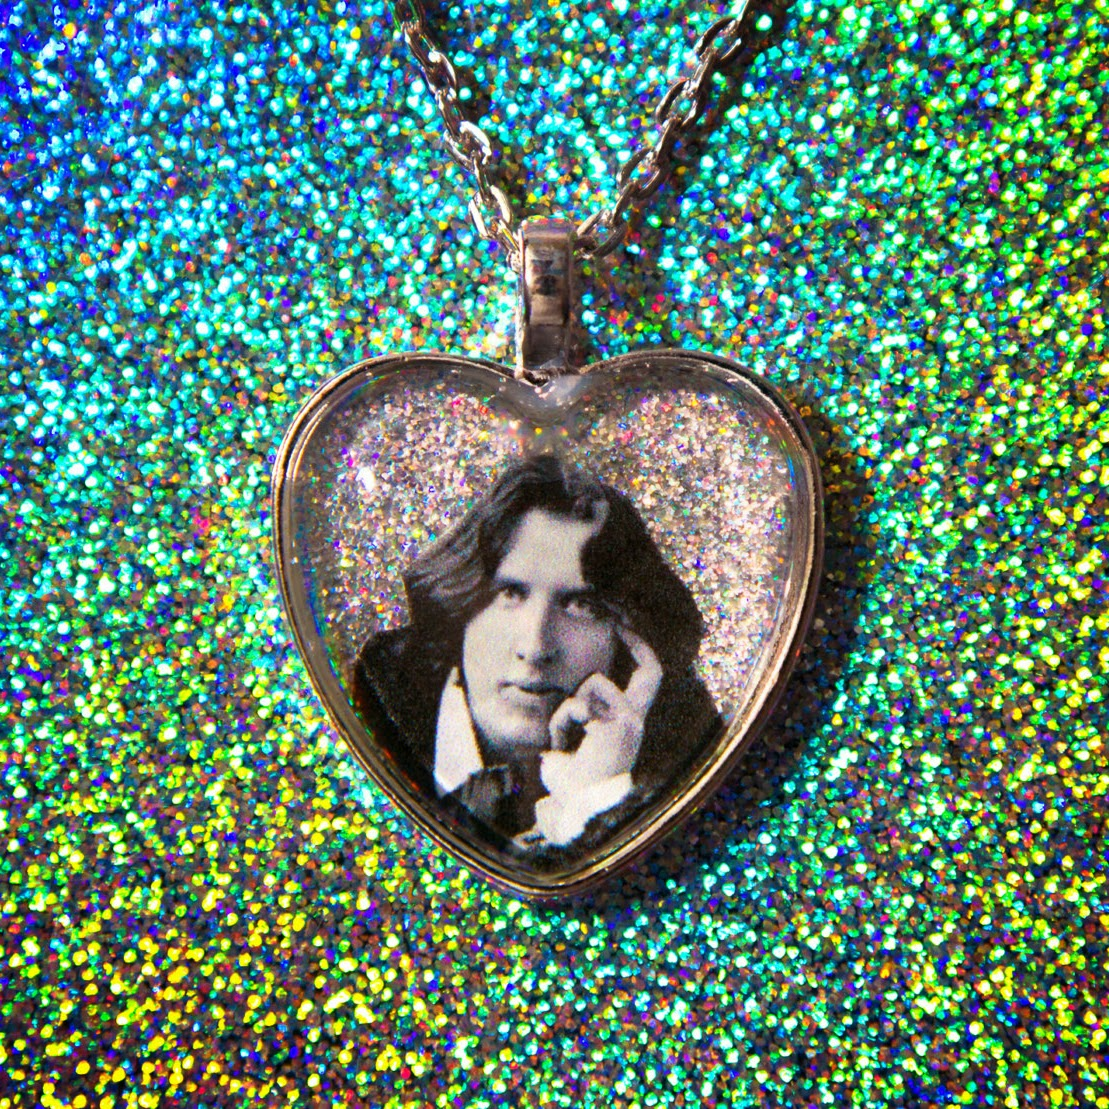 https://www.etsy.com/listing/221514591/oscar-wilde-holographic-glitter-heart?ref=sc_2&plkey=85237c4978a056bce6a7543a3a8cd7dc776d89f4%3A221514591&ga_search_query=oscar+wilde&ga_search_type=all&ga_view_type=gallery